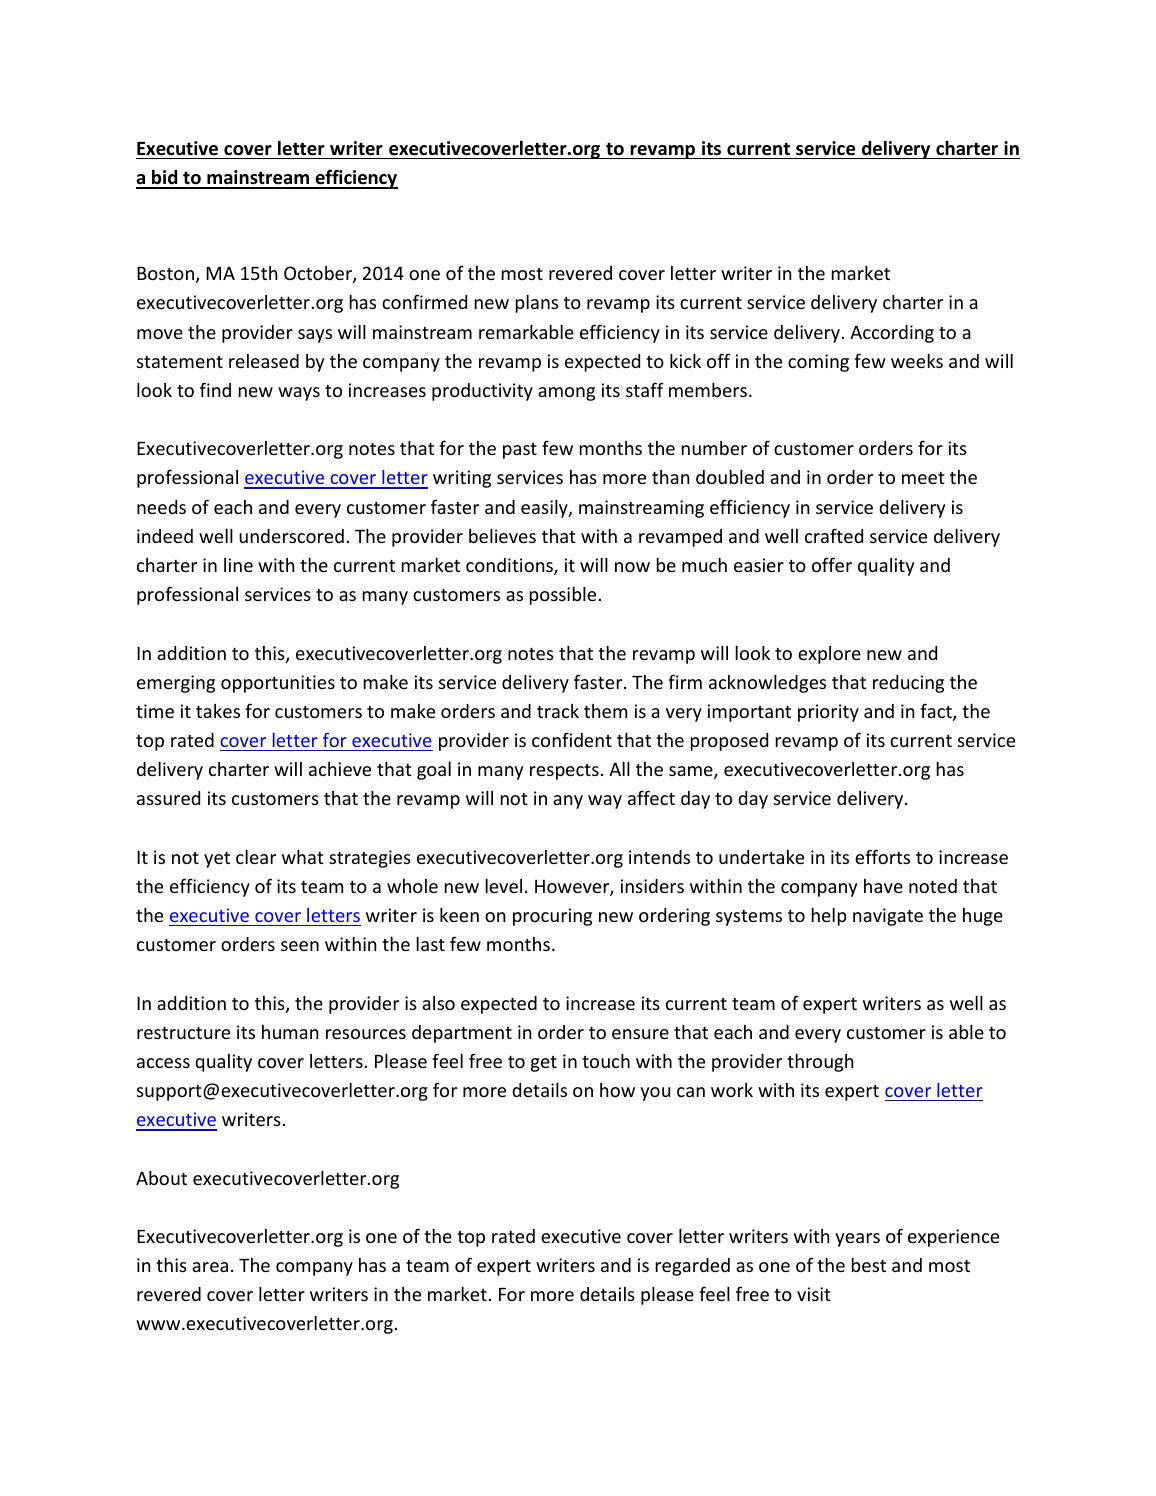 Executive cover letter writer executivecoverletter.org to revamp its ...